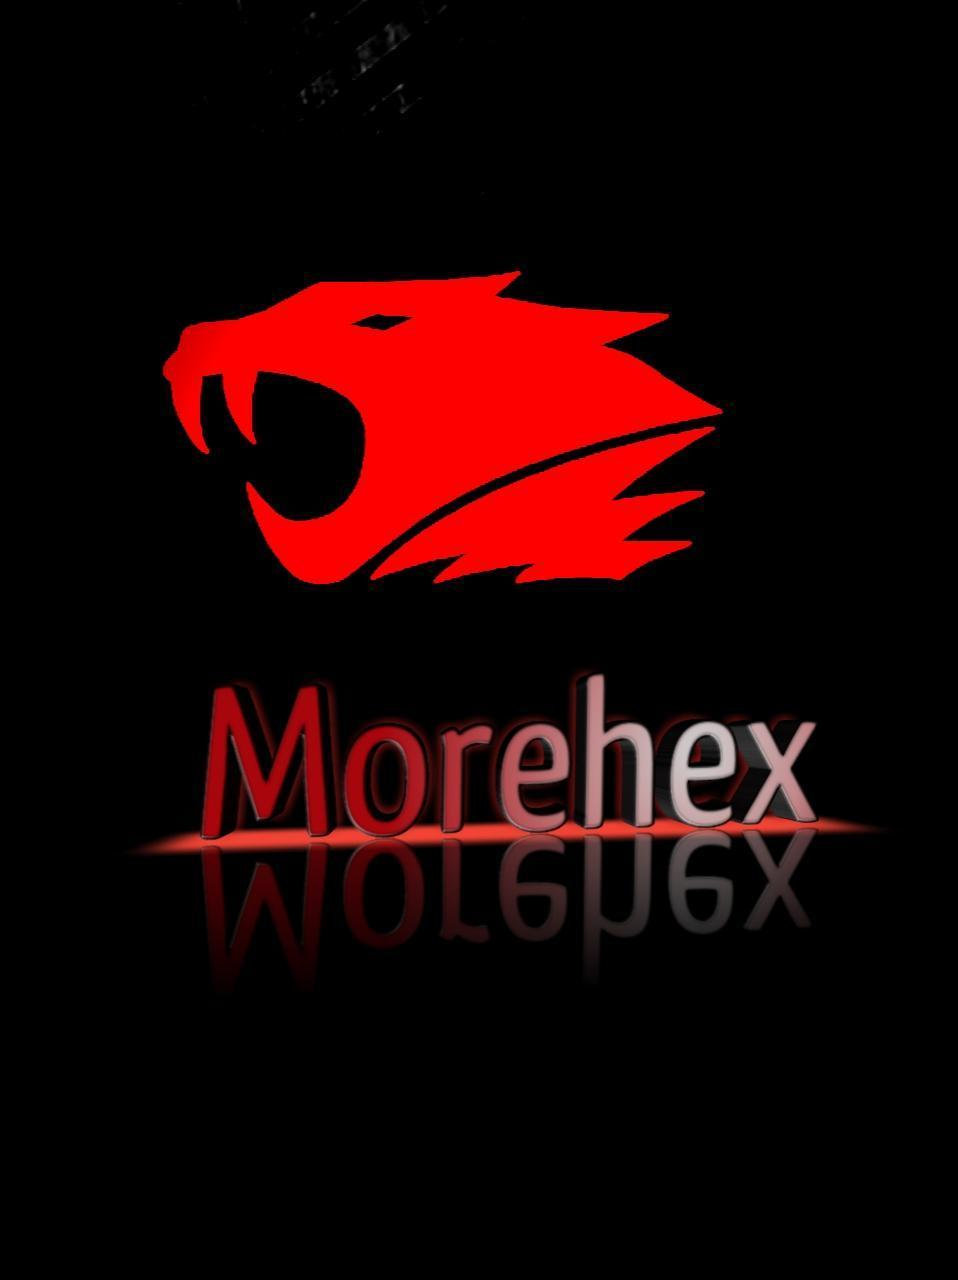 Morehex profile picture